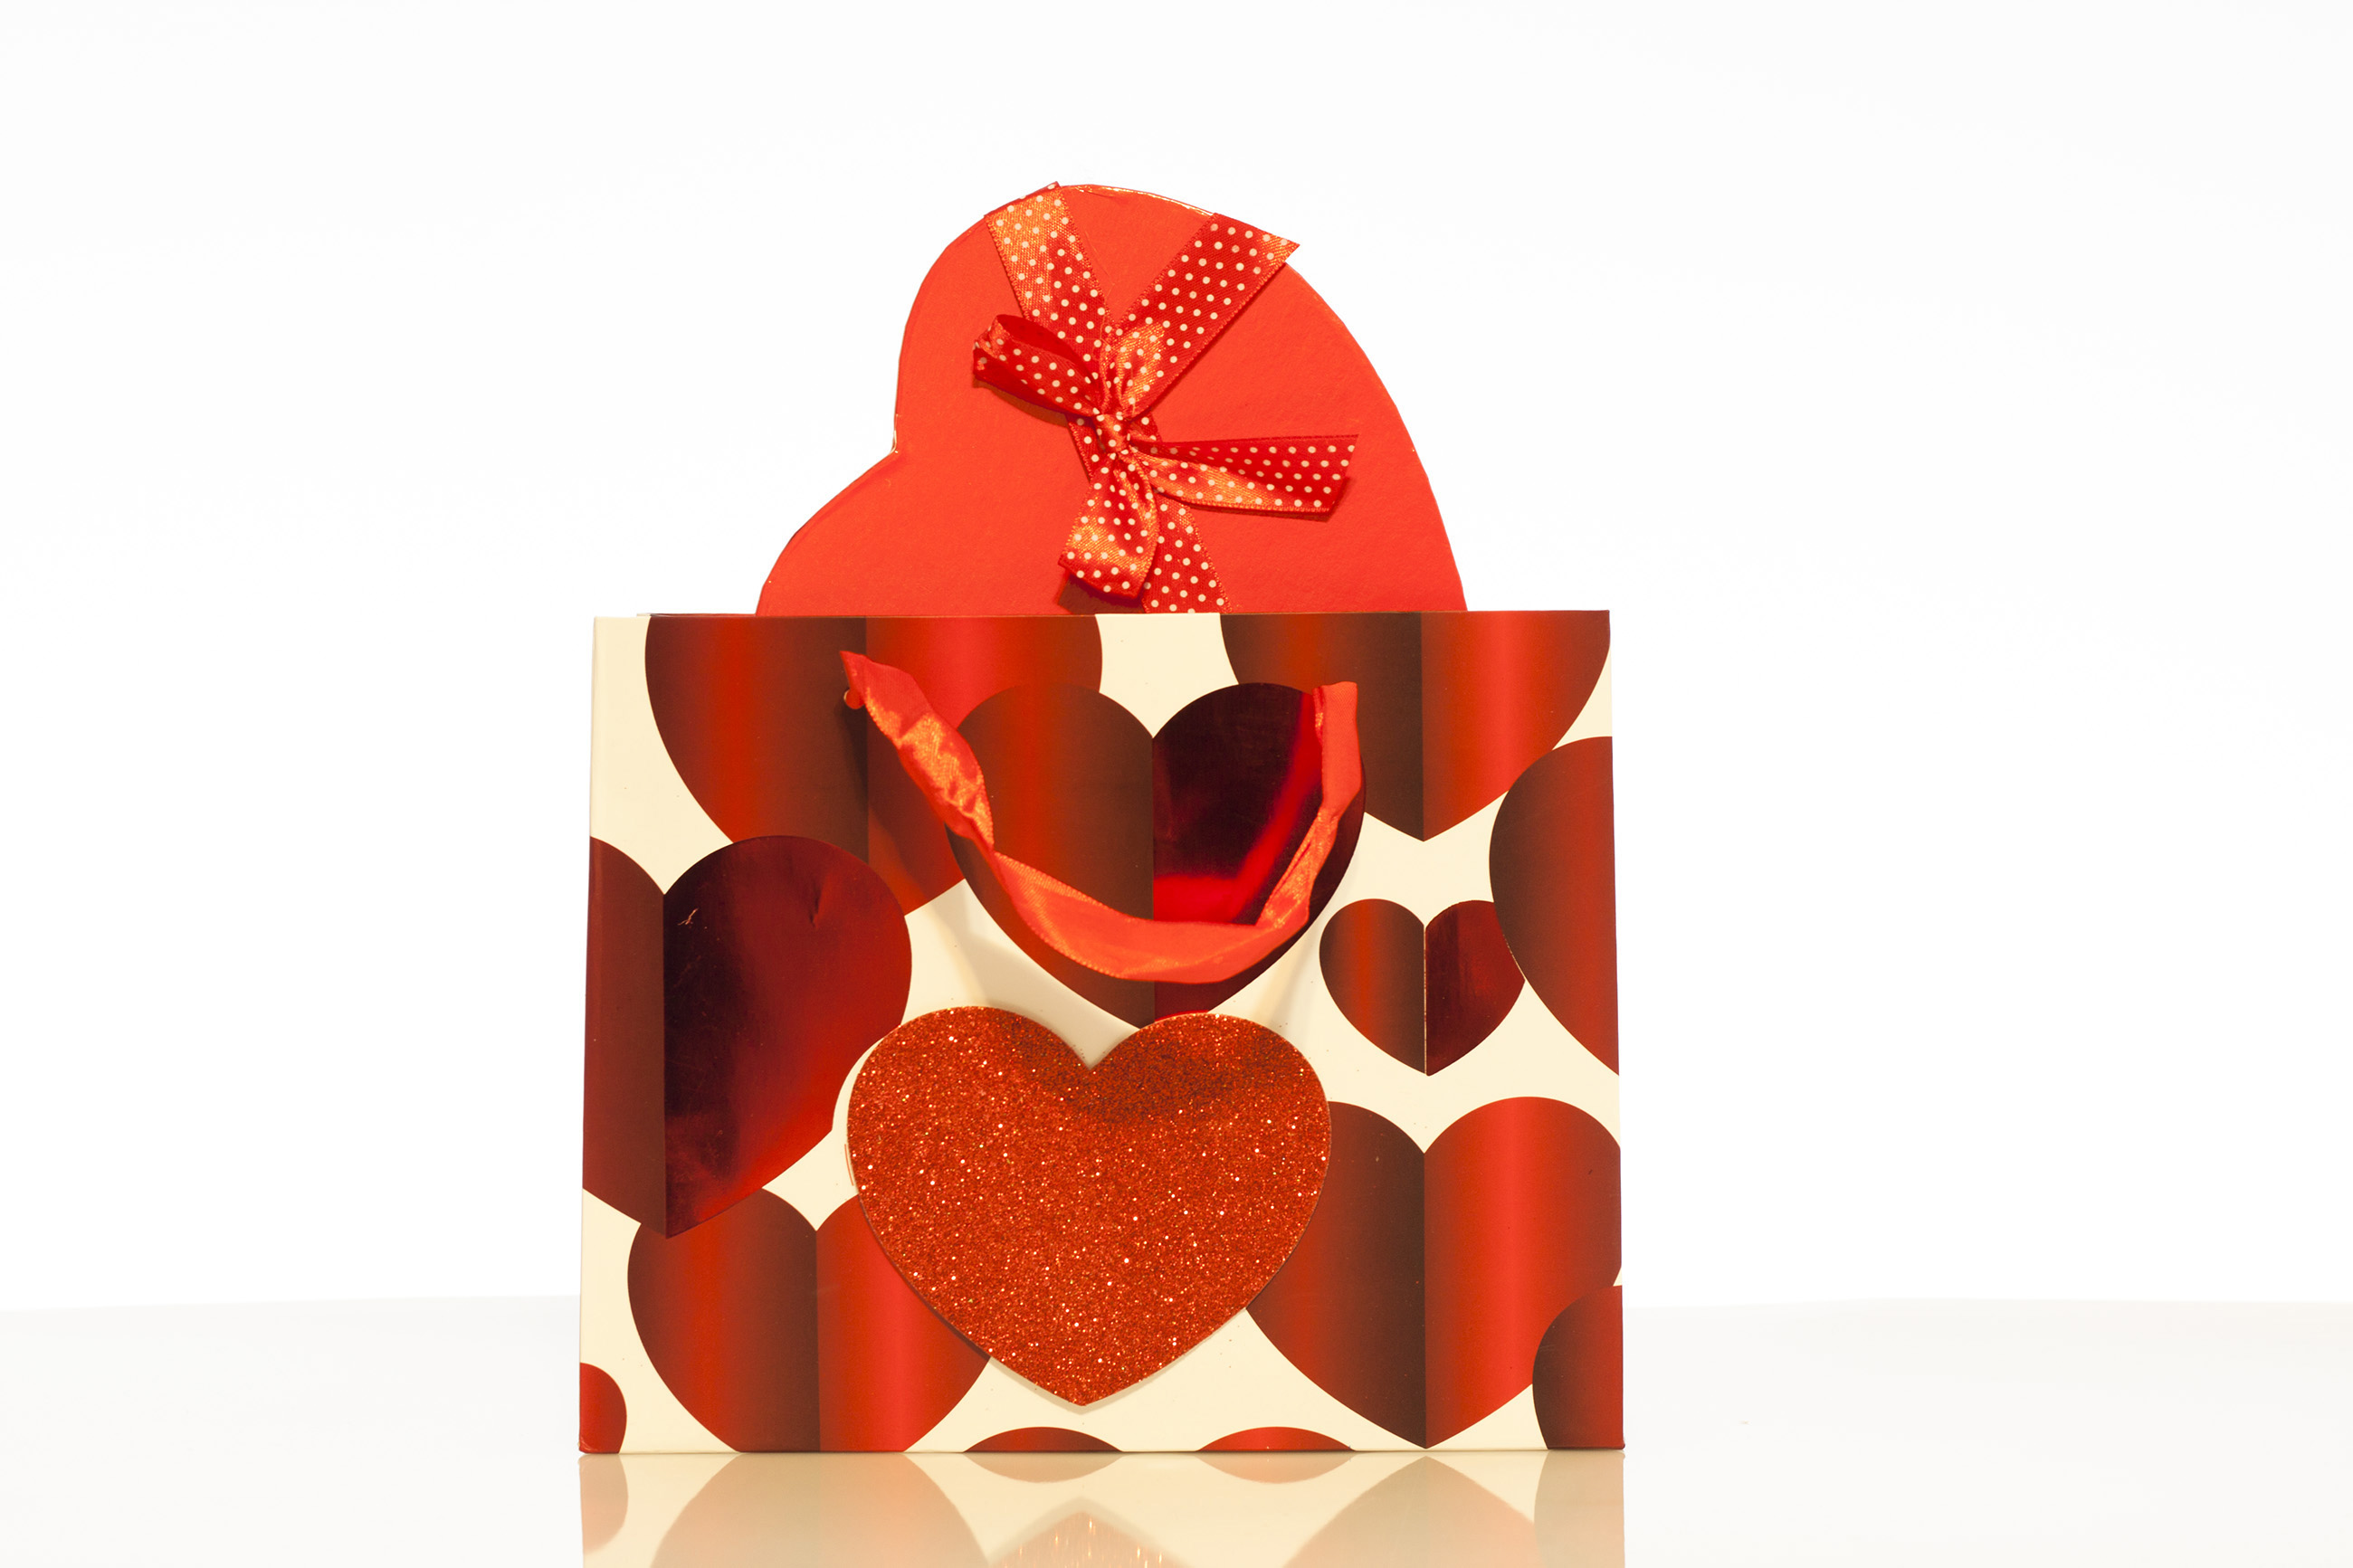 Bag and gift box, Affection, Ribbon, Objects, Package, HQ Photo